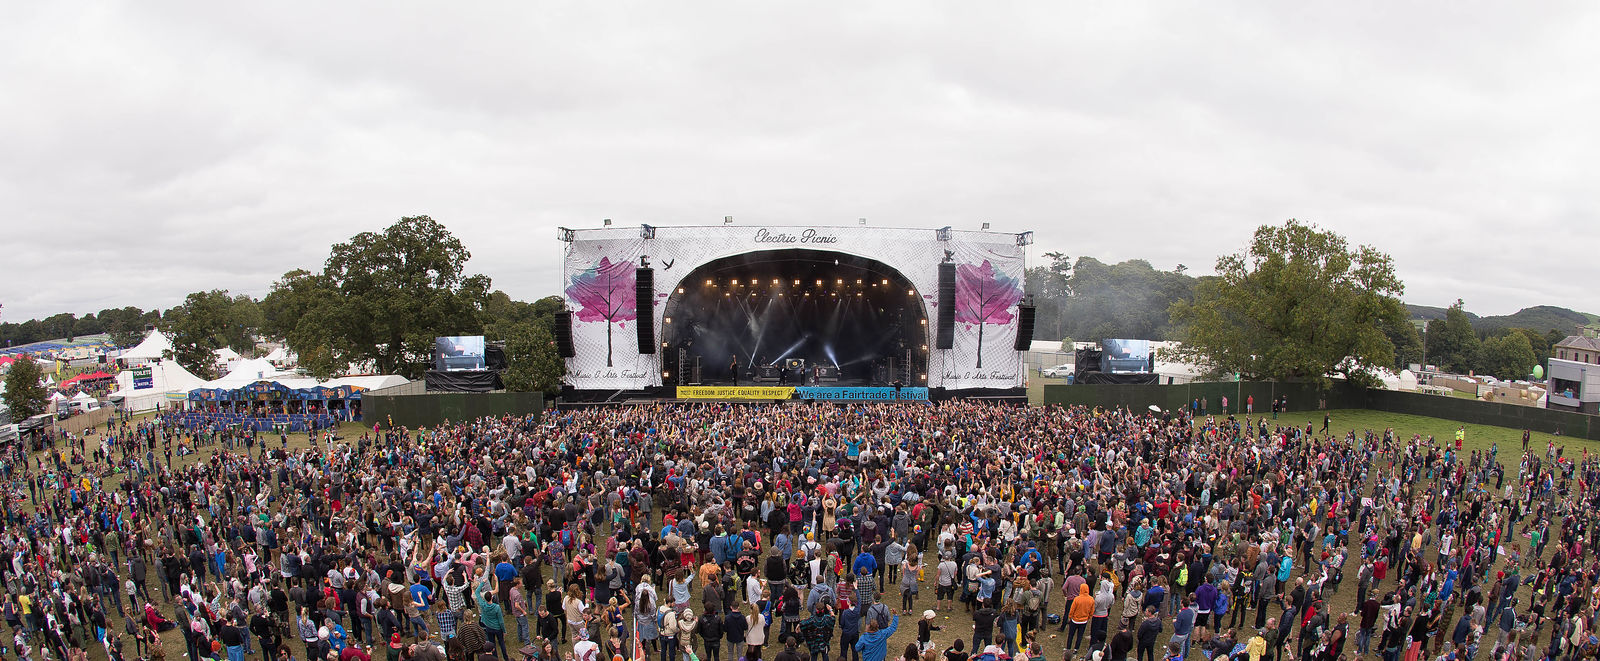 Electric Picnic 2015